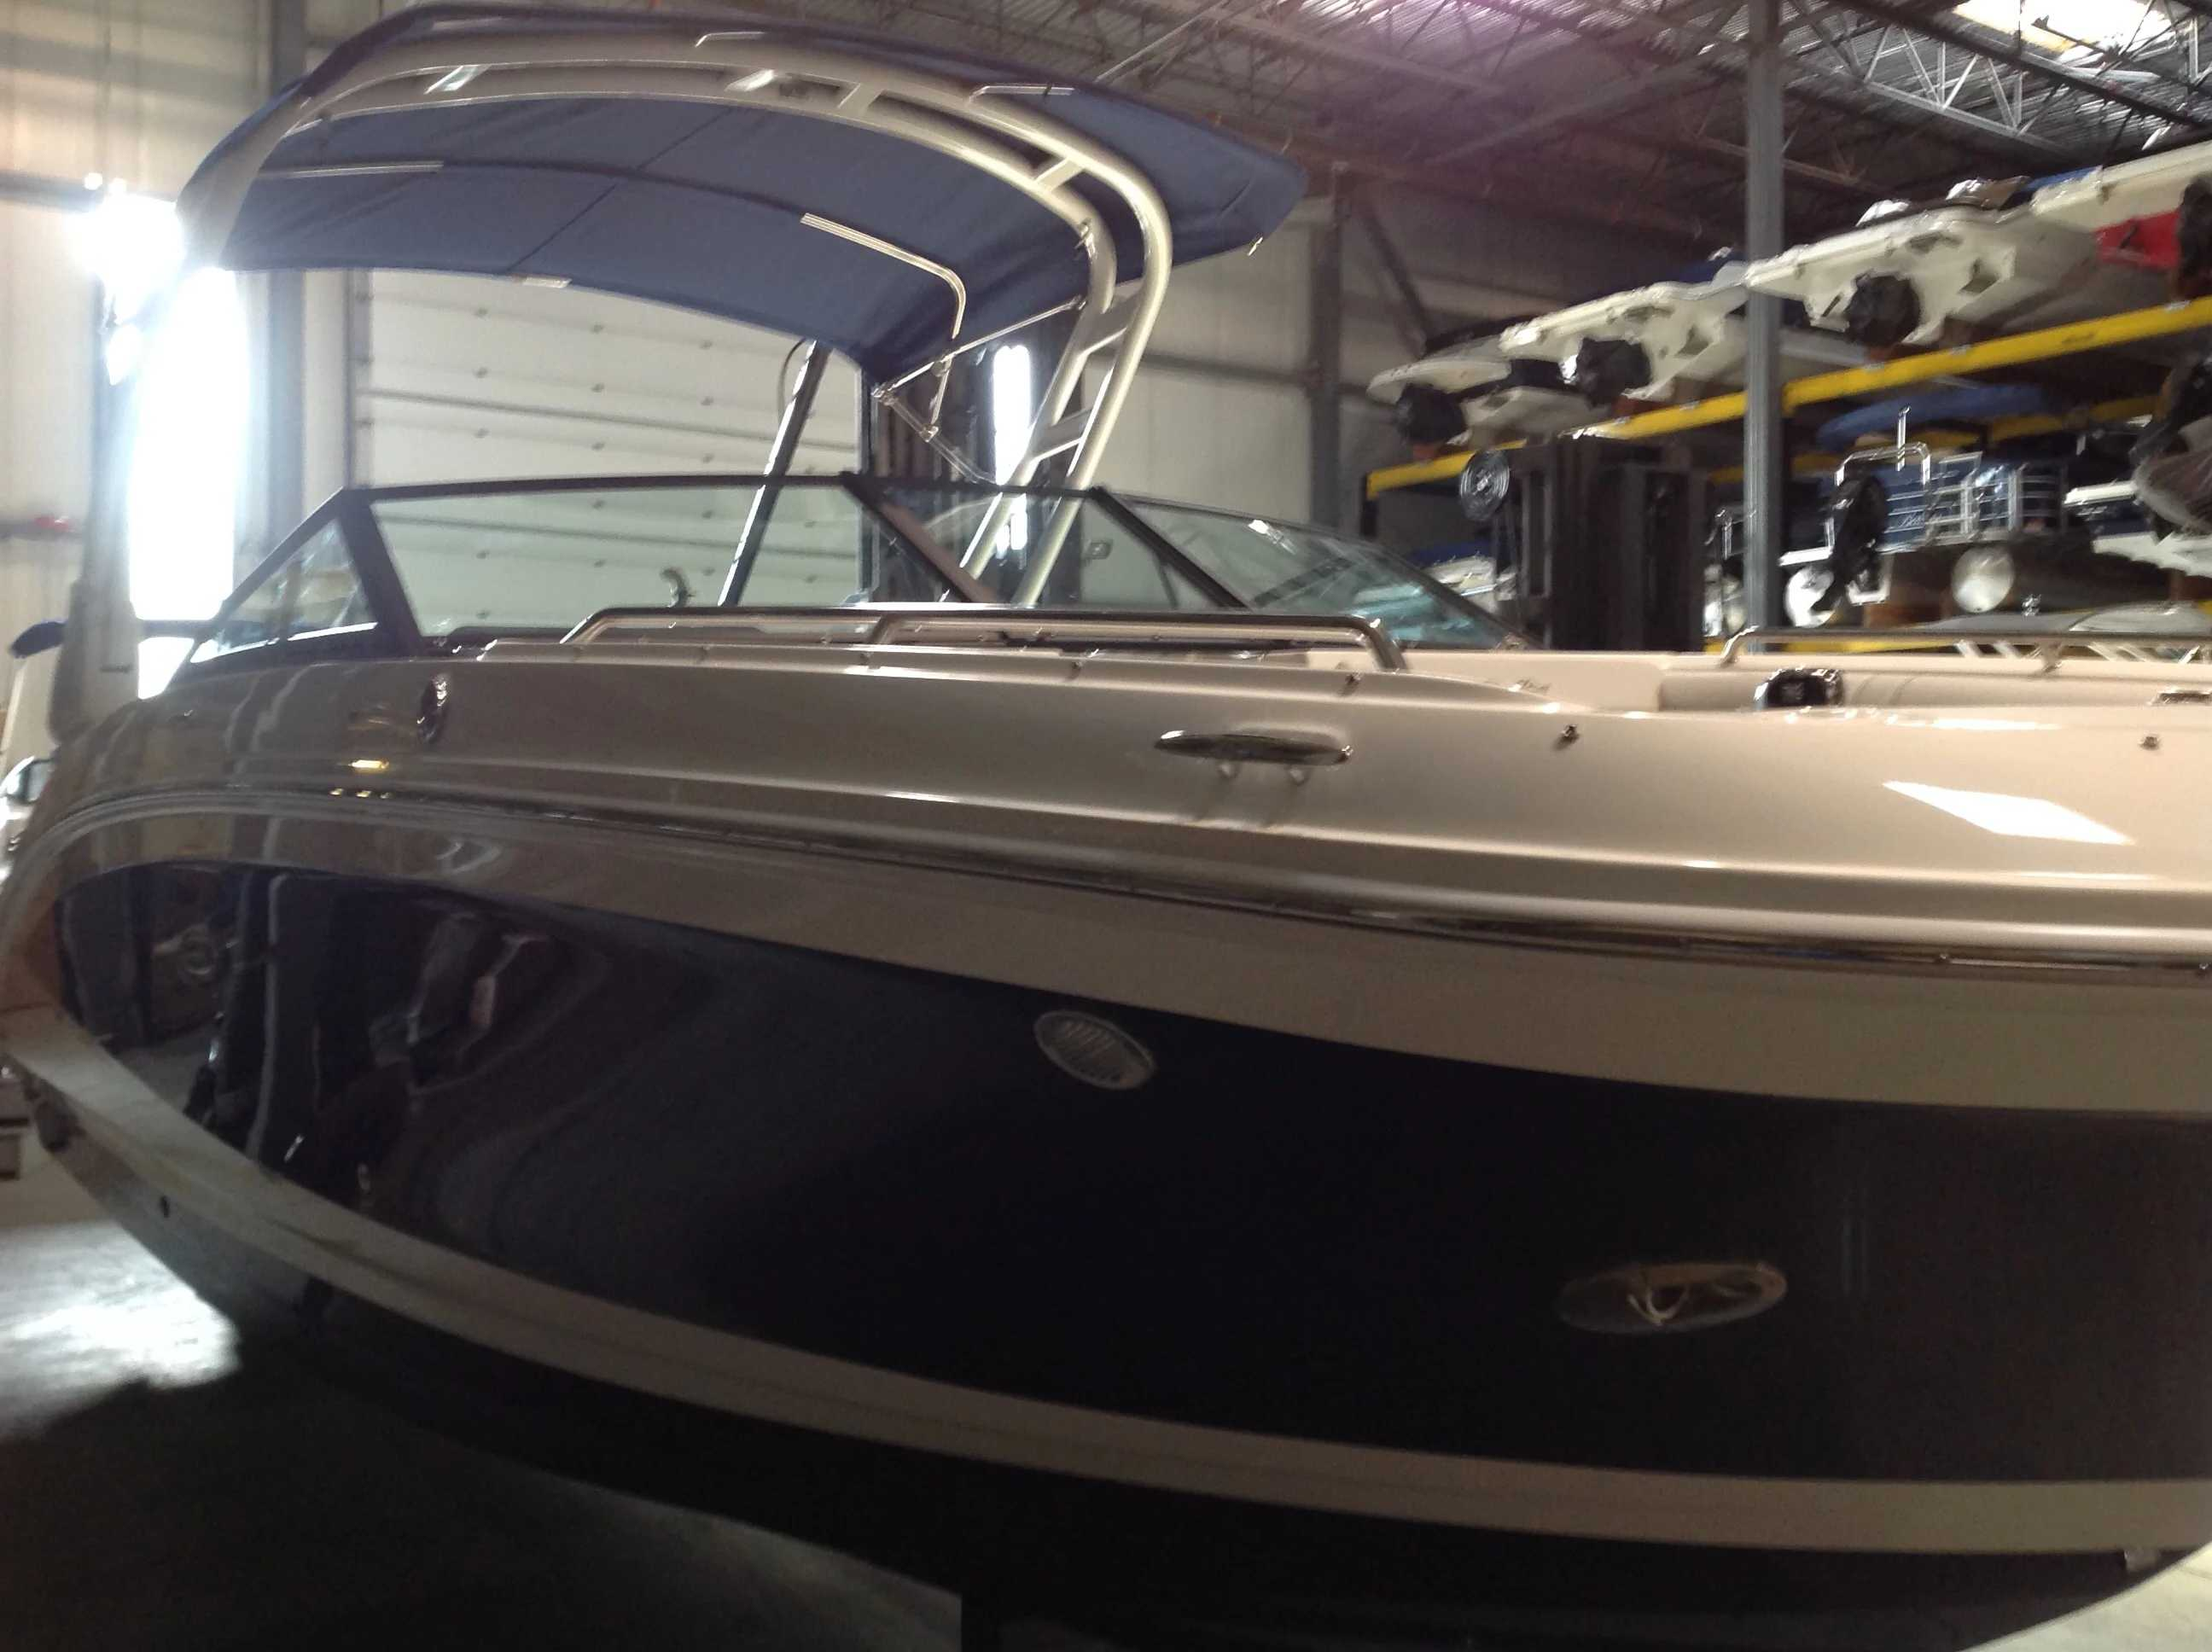 2021 Sea Ray boat for sale, model of the boat is 270 SDX & Image # 4 of 21